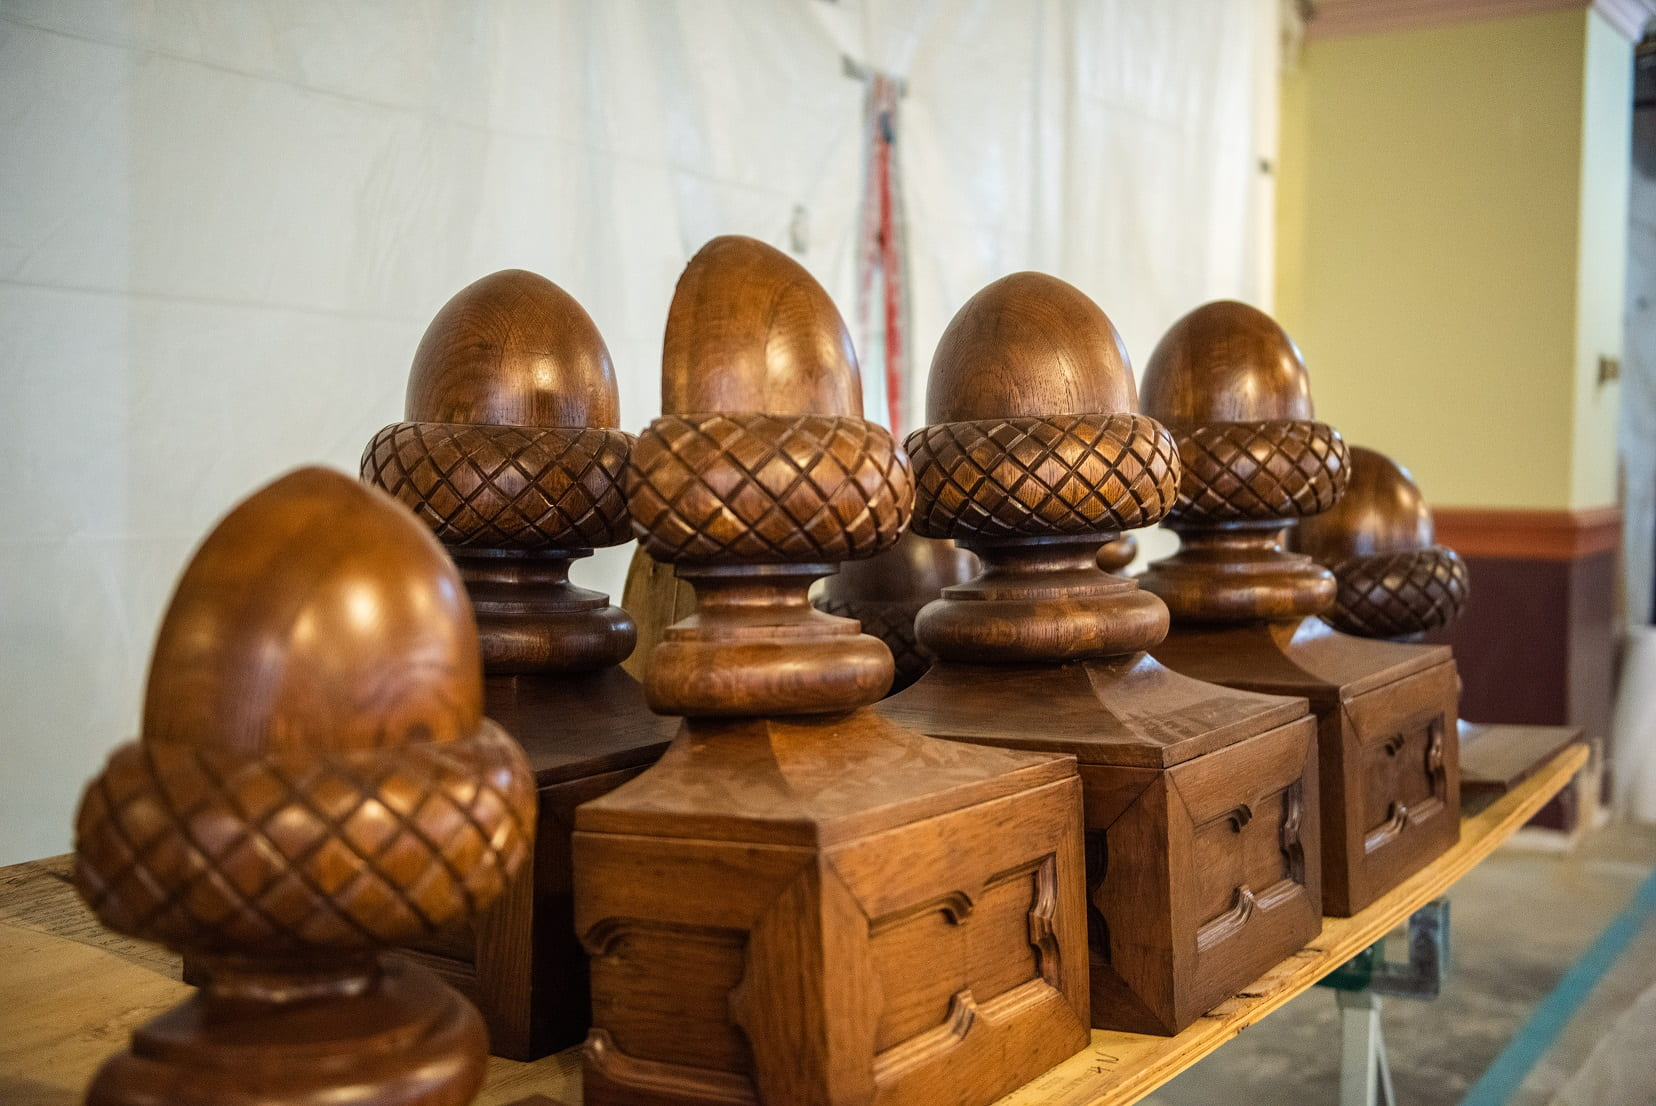 A picture of the repaired and varnished acorns.